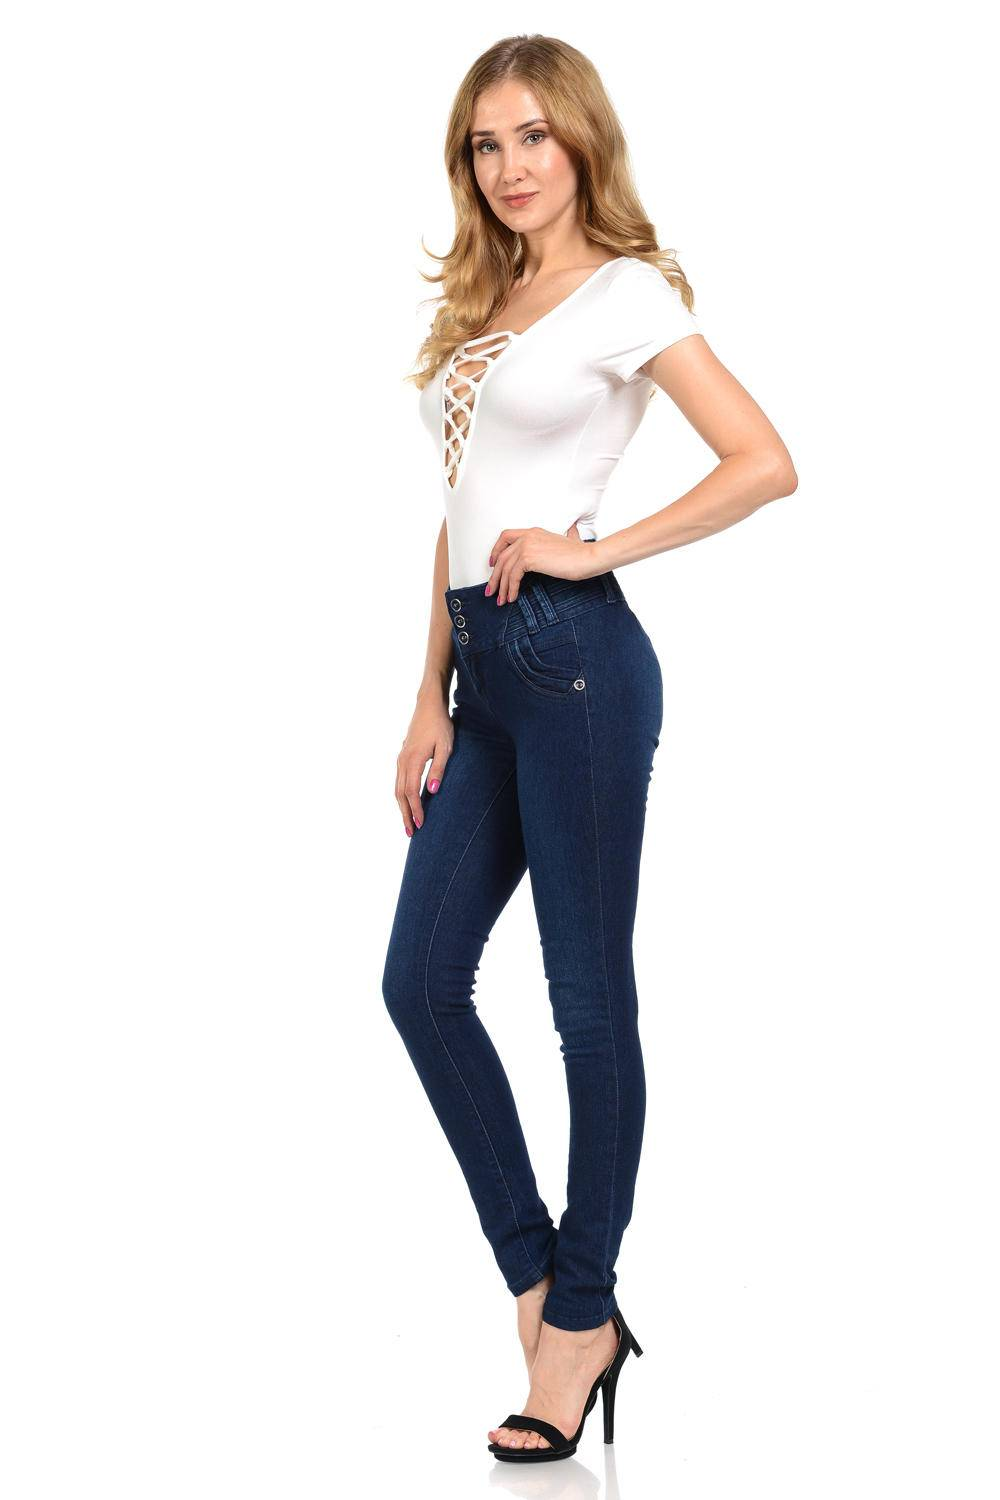 Sweet Look Premium Edition Womens Jeans · Skinny · Style